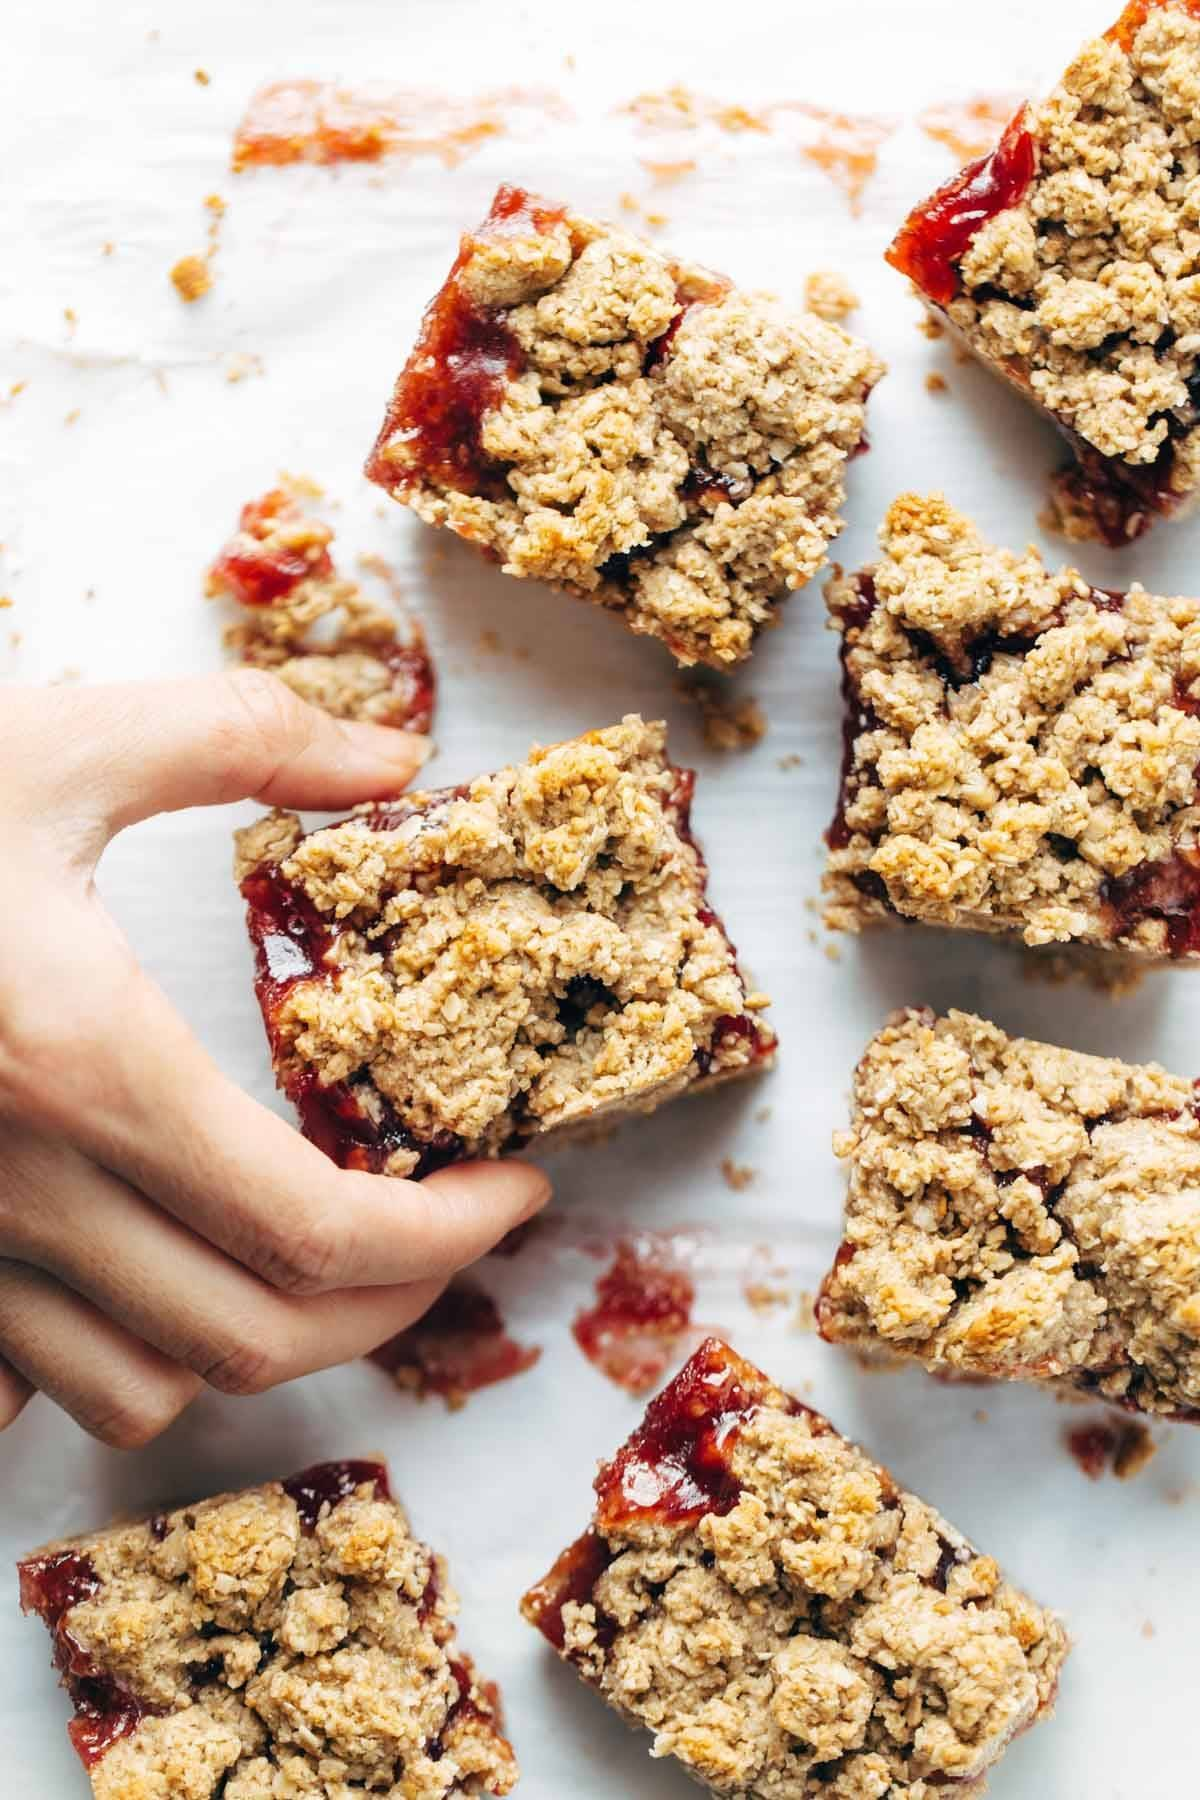 Hand grabbing Strawberry Oat Crumble Bars